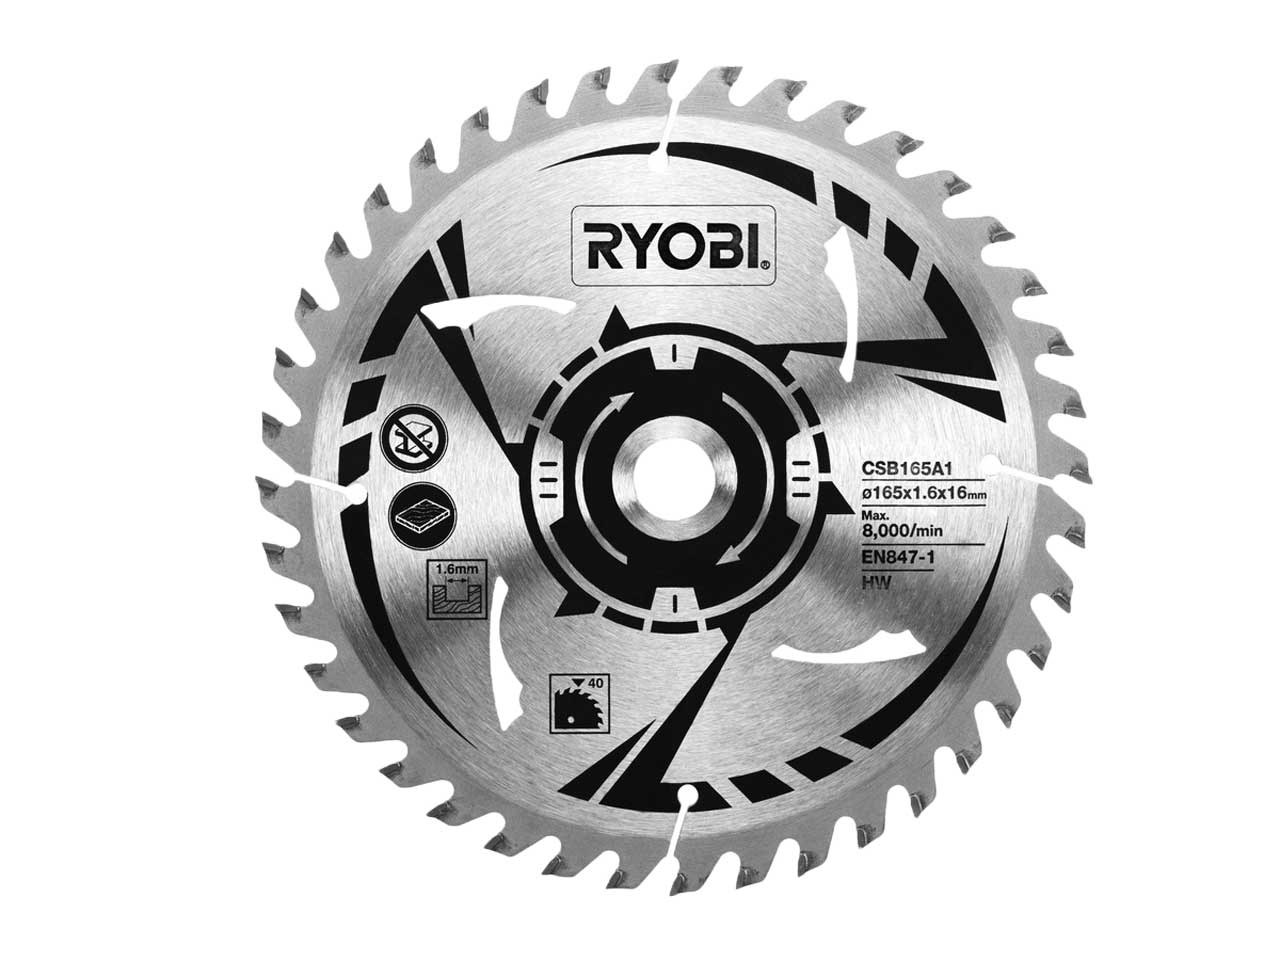 Ryobi csb165a1 165mm circular saw blade keyboard keysfo Gallery